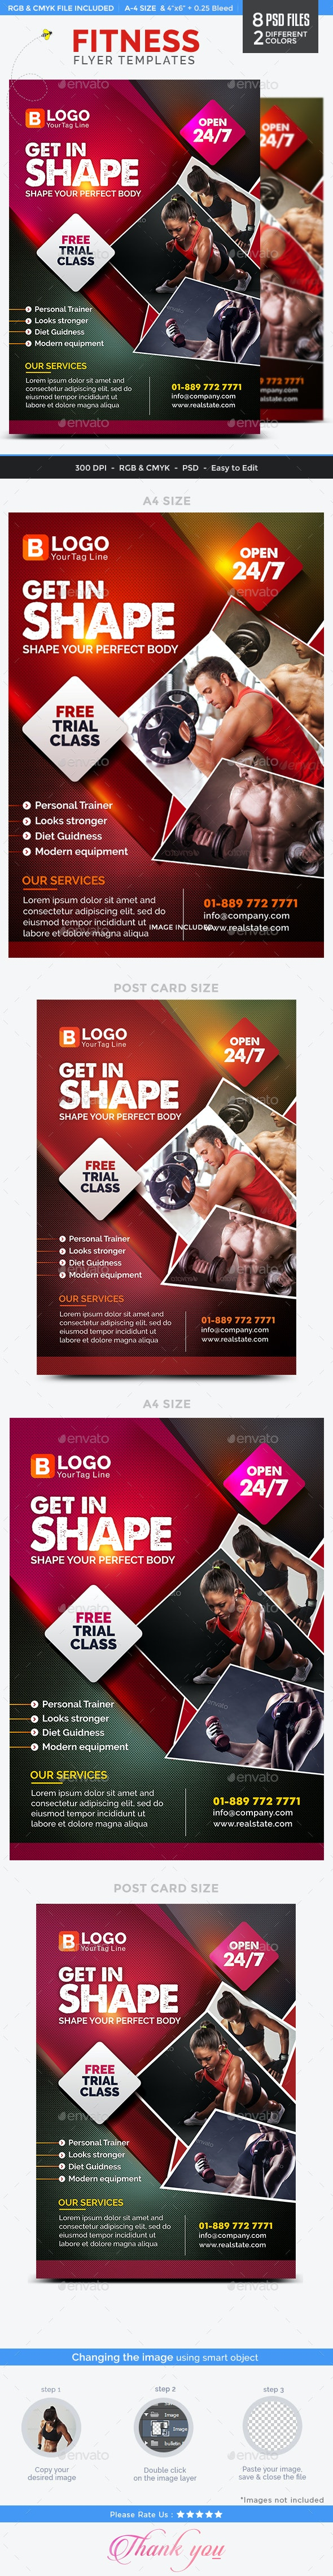 Fitness Flyer Templates - 2 Color Variations - Sports Events